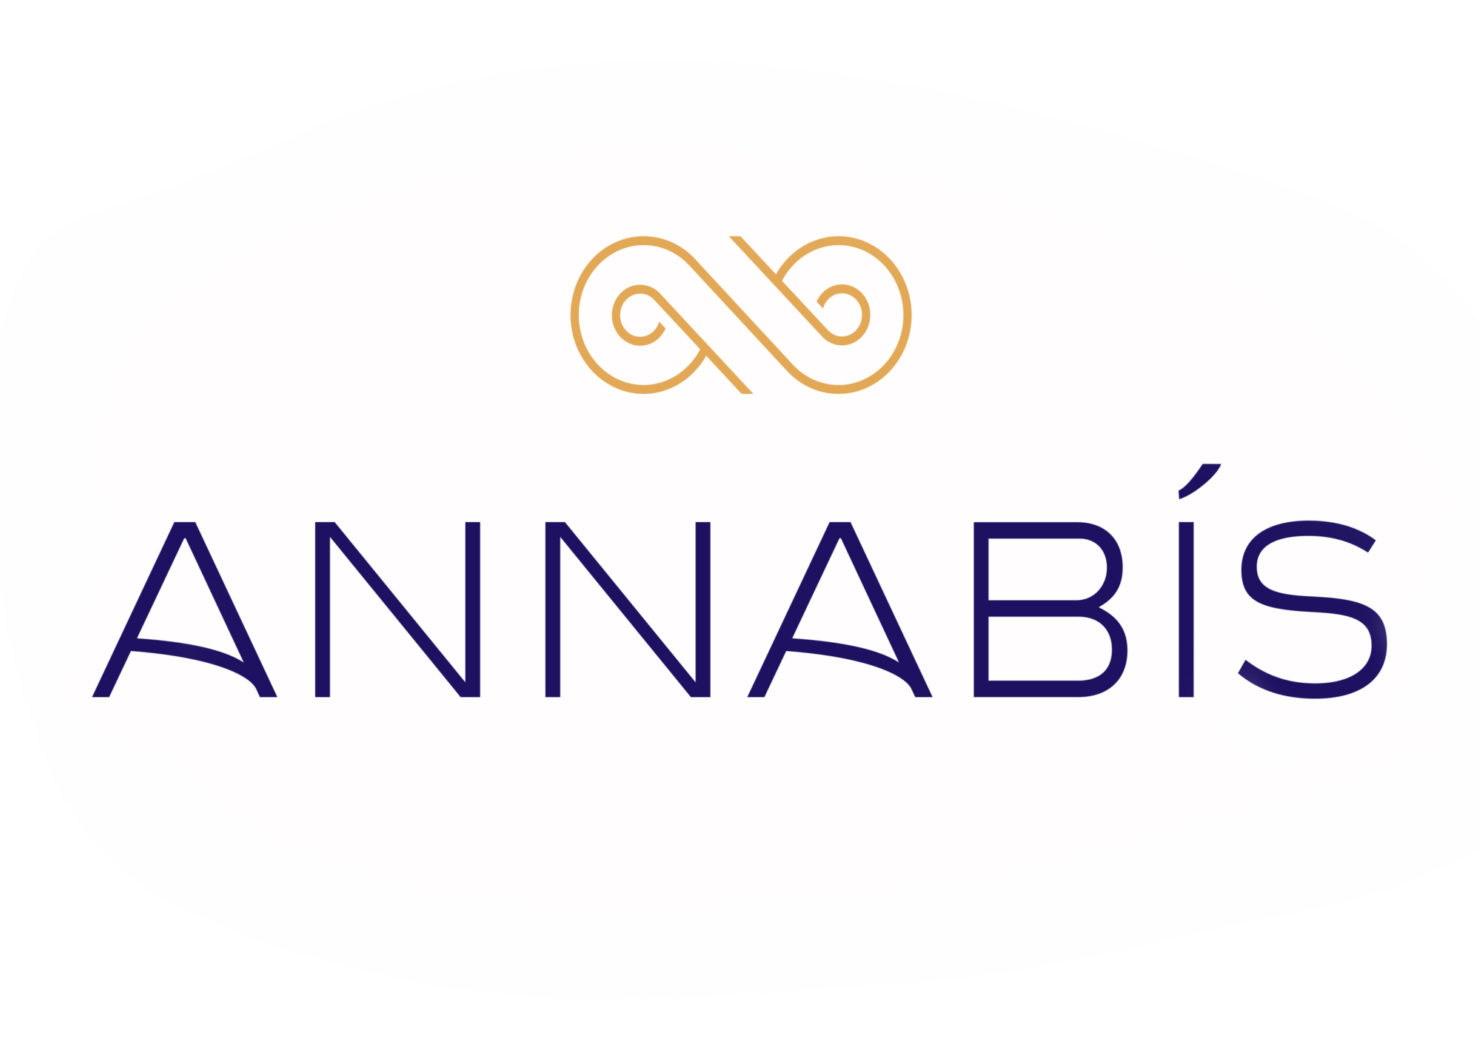 Annabis Logo Lockup Slideshow